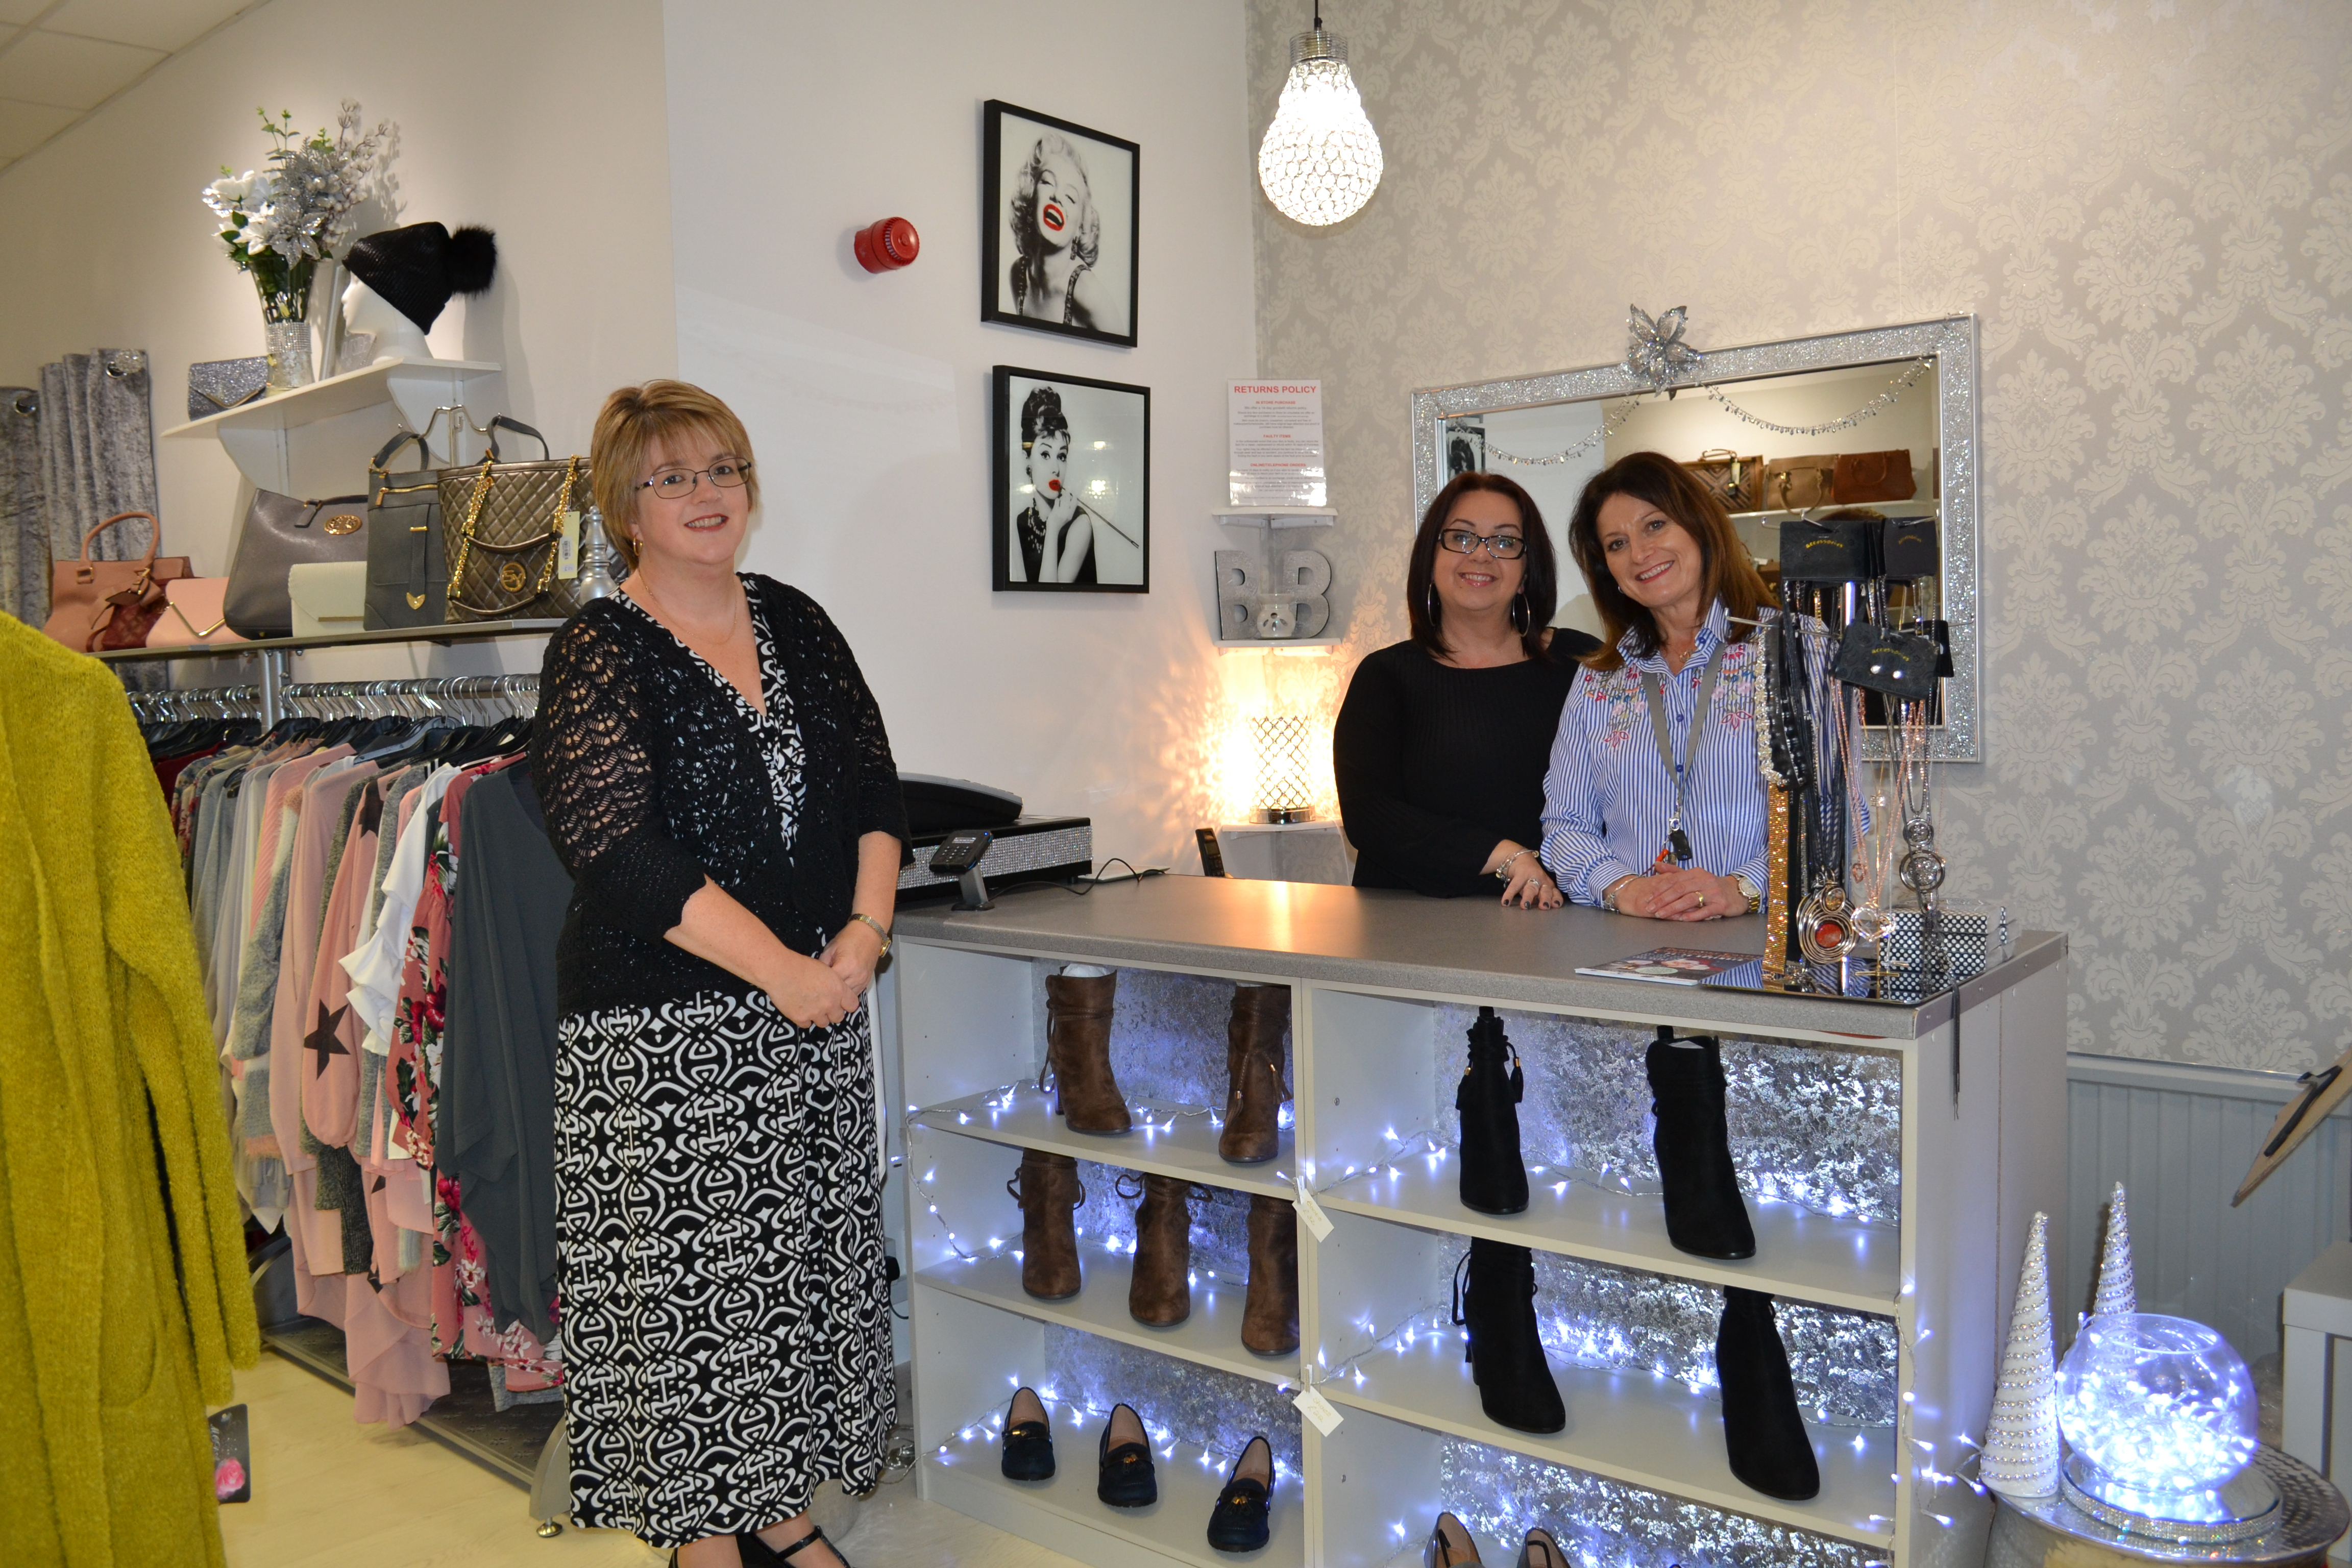 eef273c3ee New women's fashion store opens at Milford Waterfront – The ...